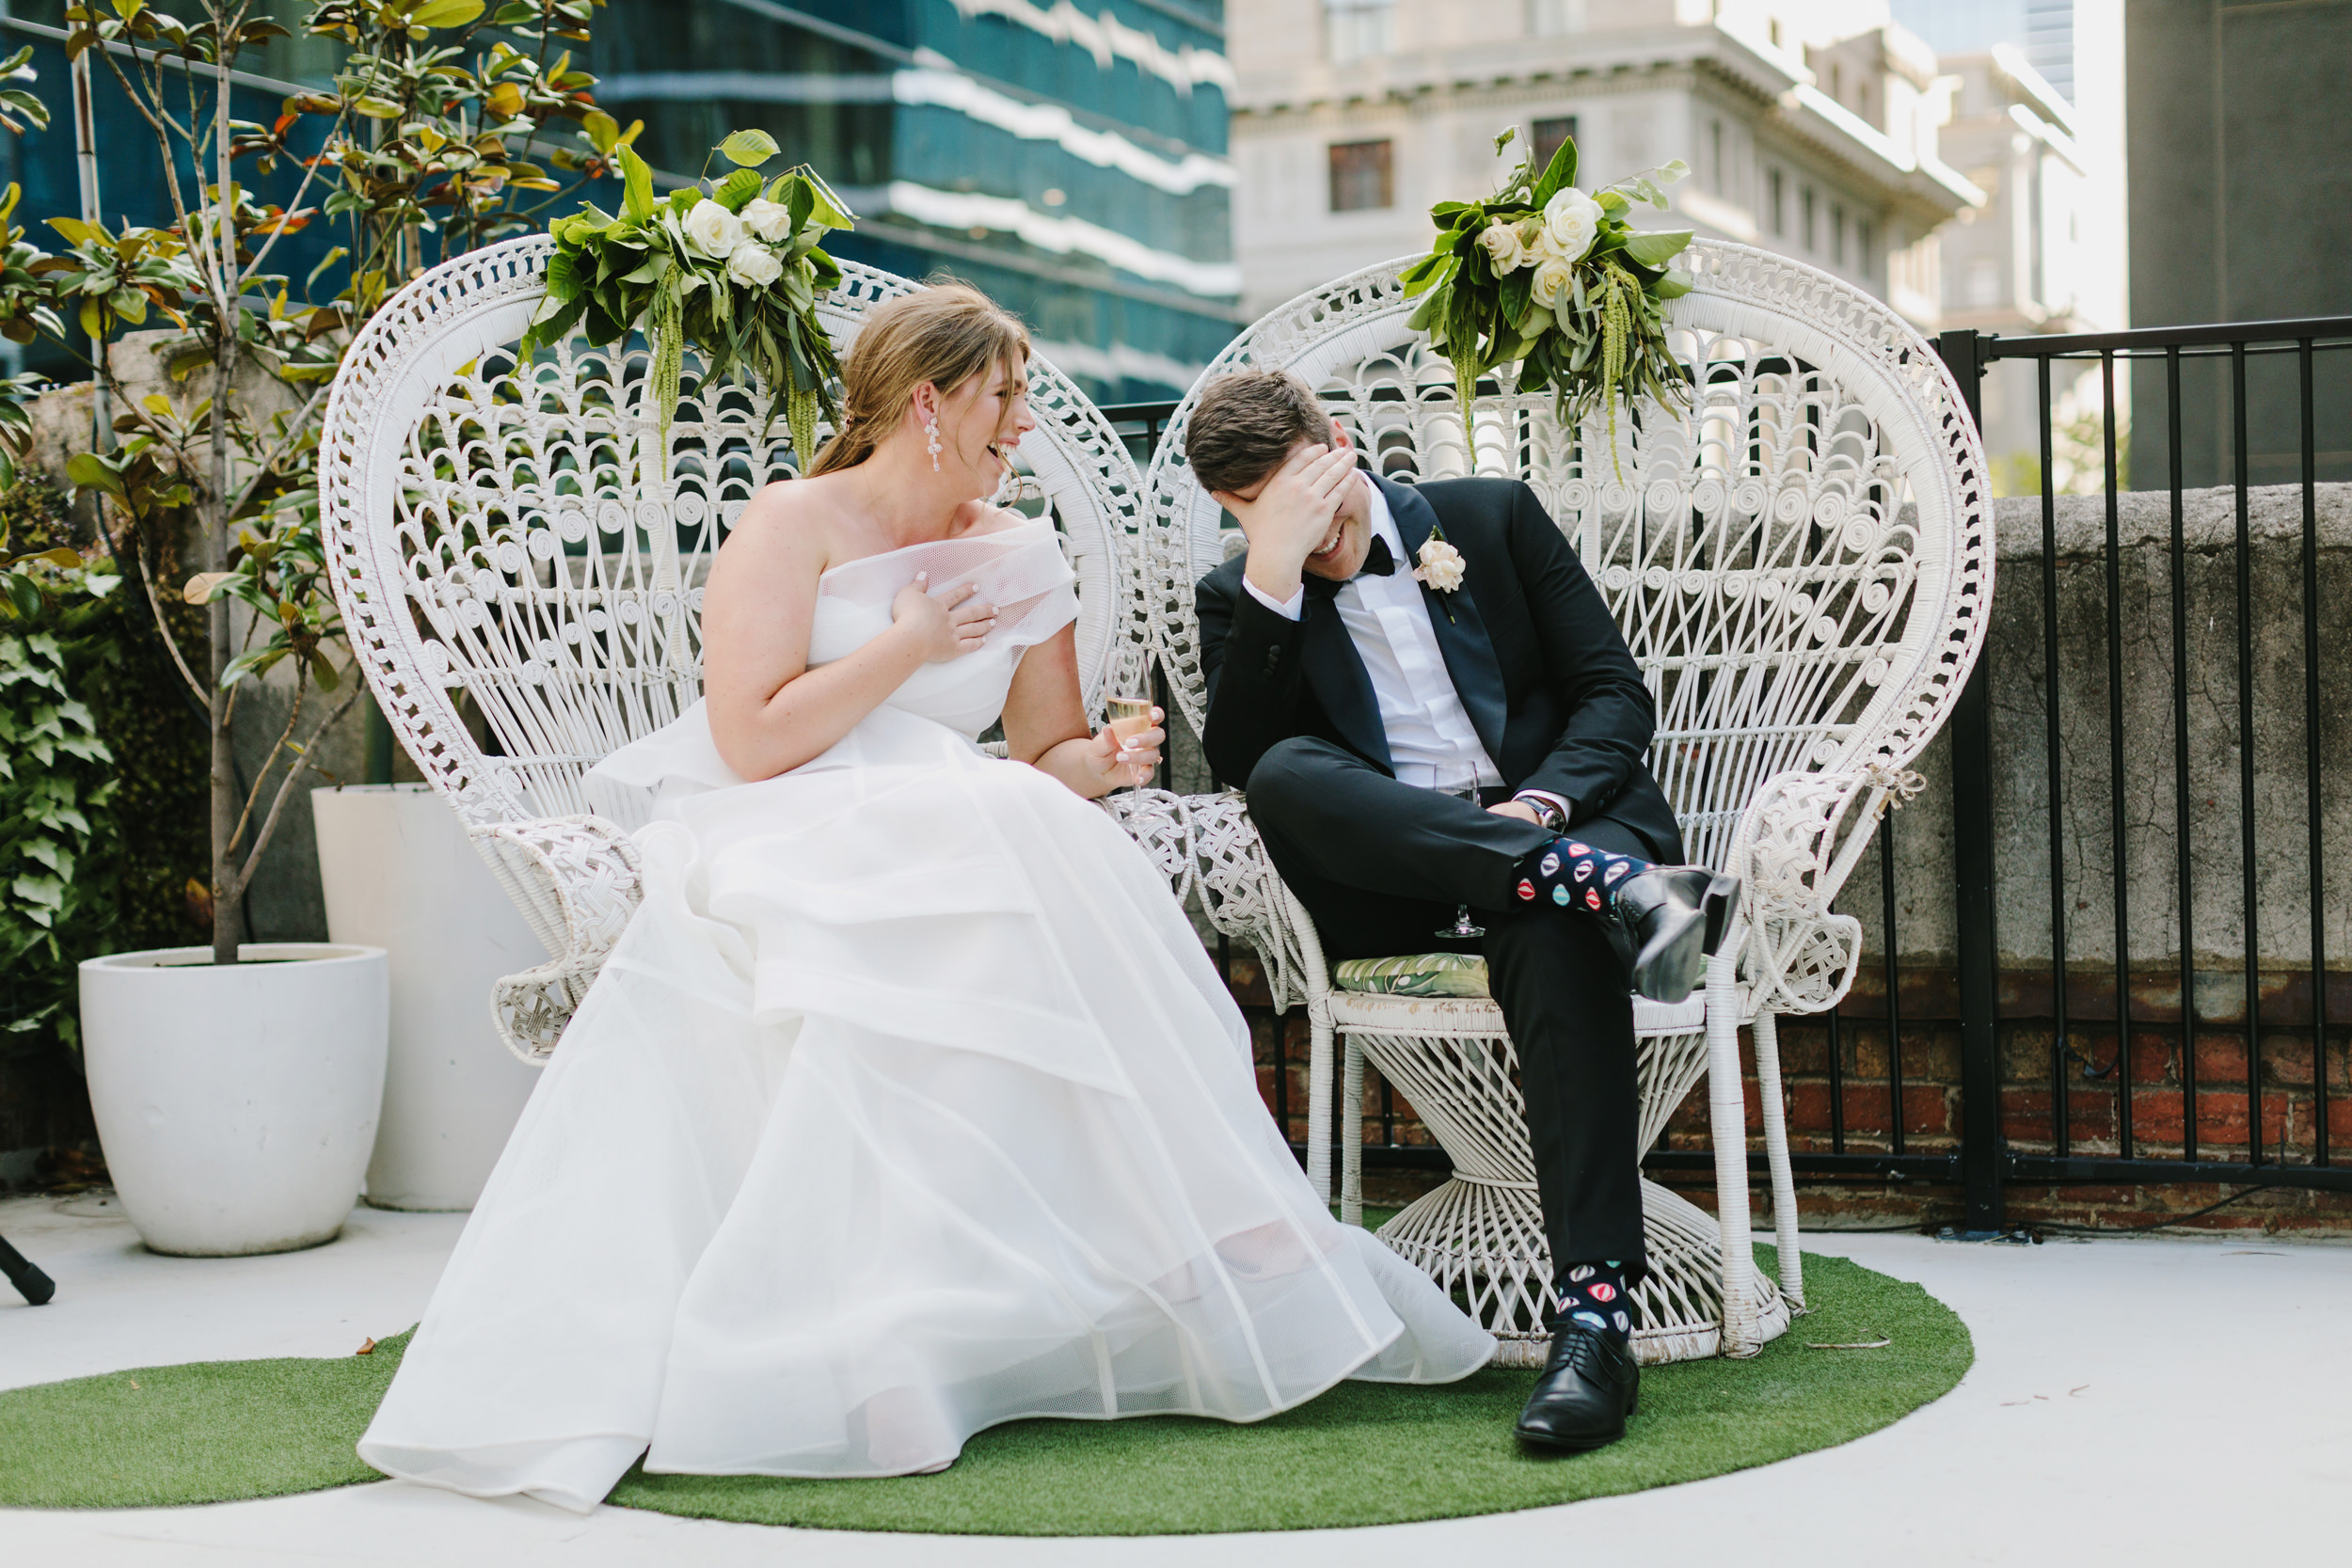 Melbourne_City_Rooftop_Wedding_Tyson_Brigette106.JPG